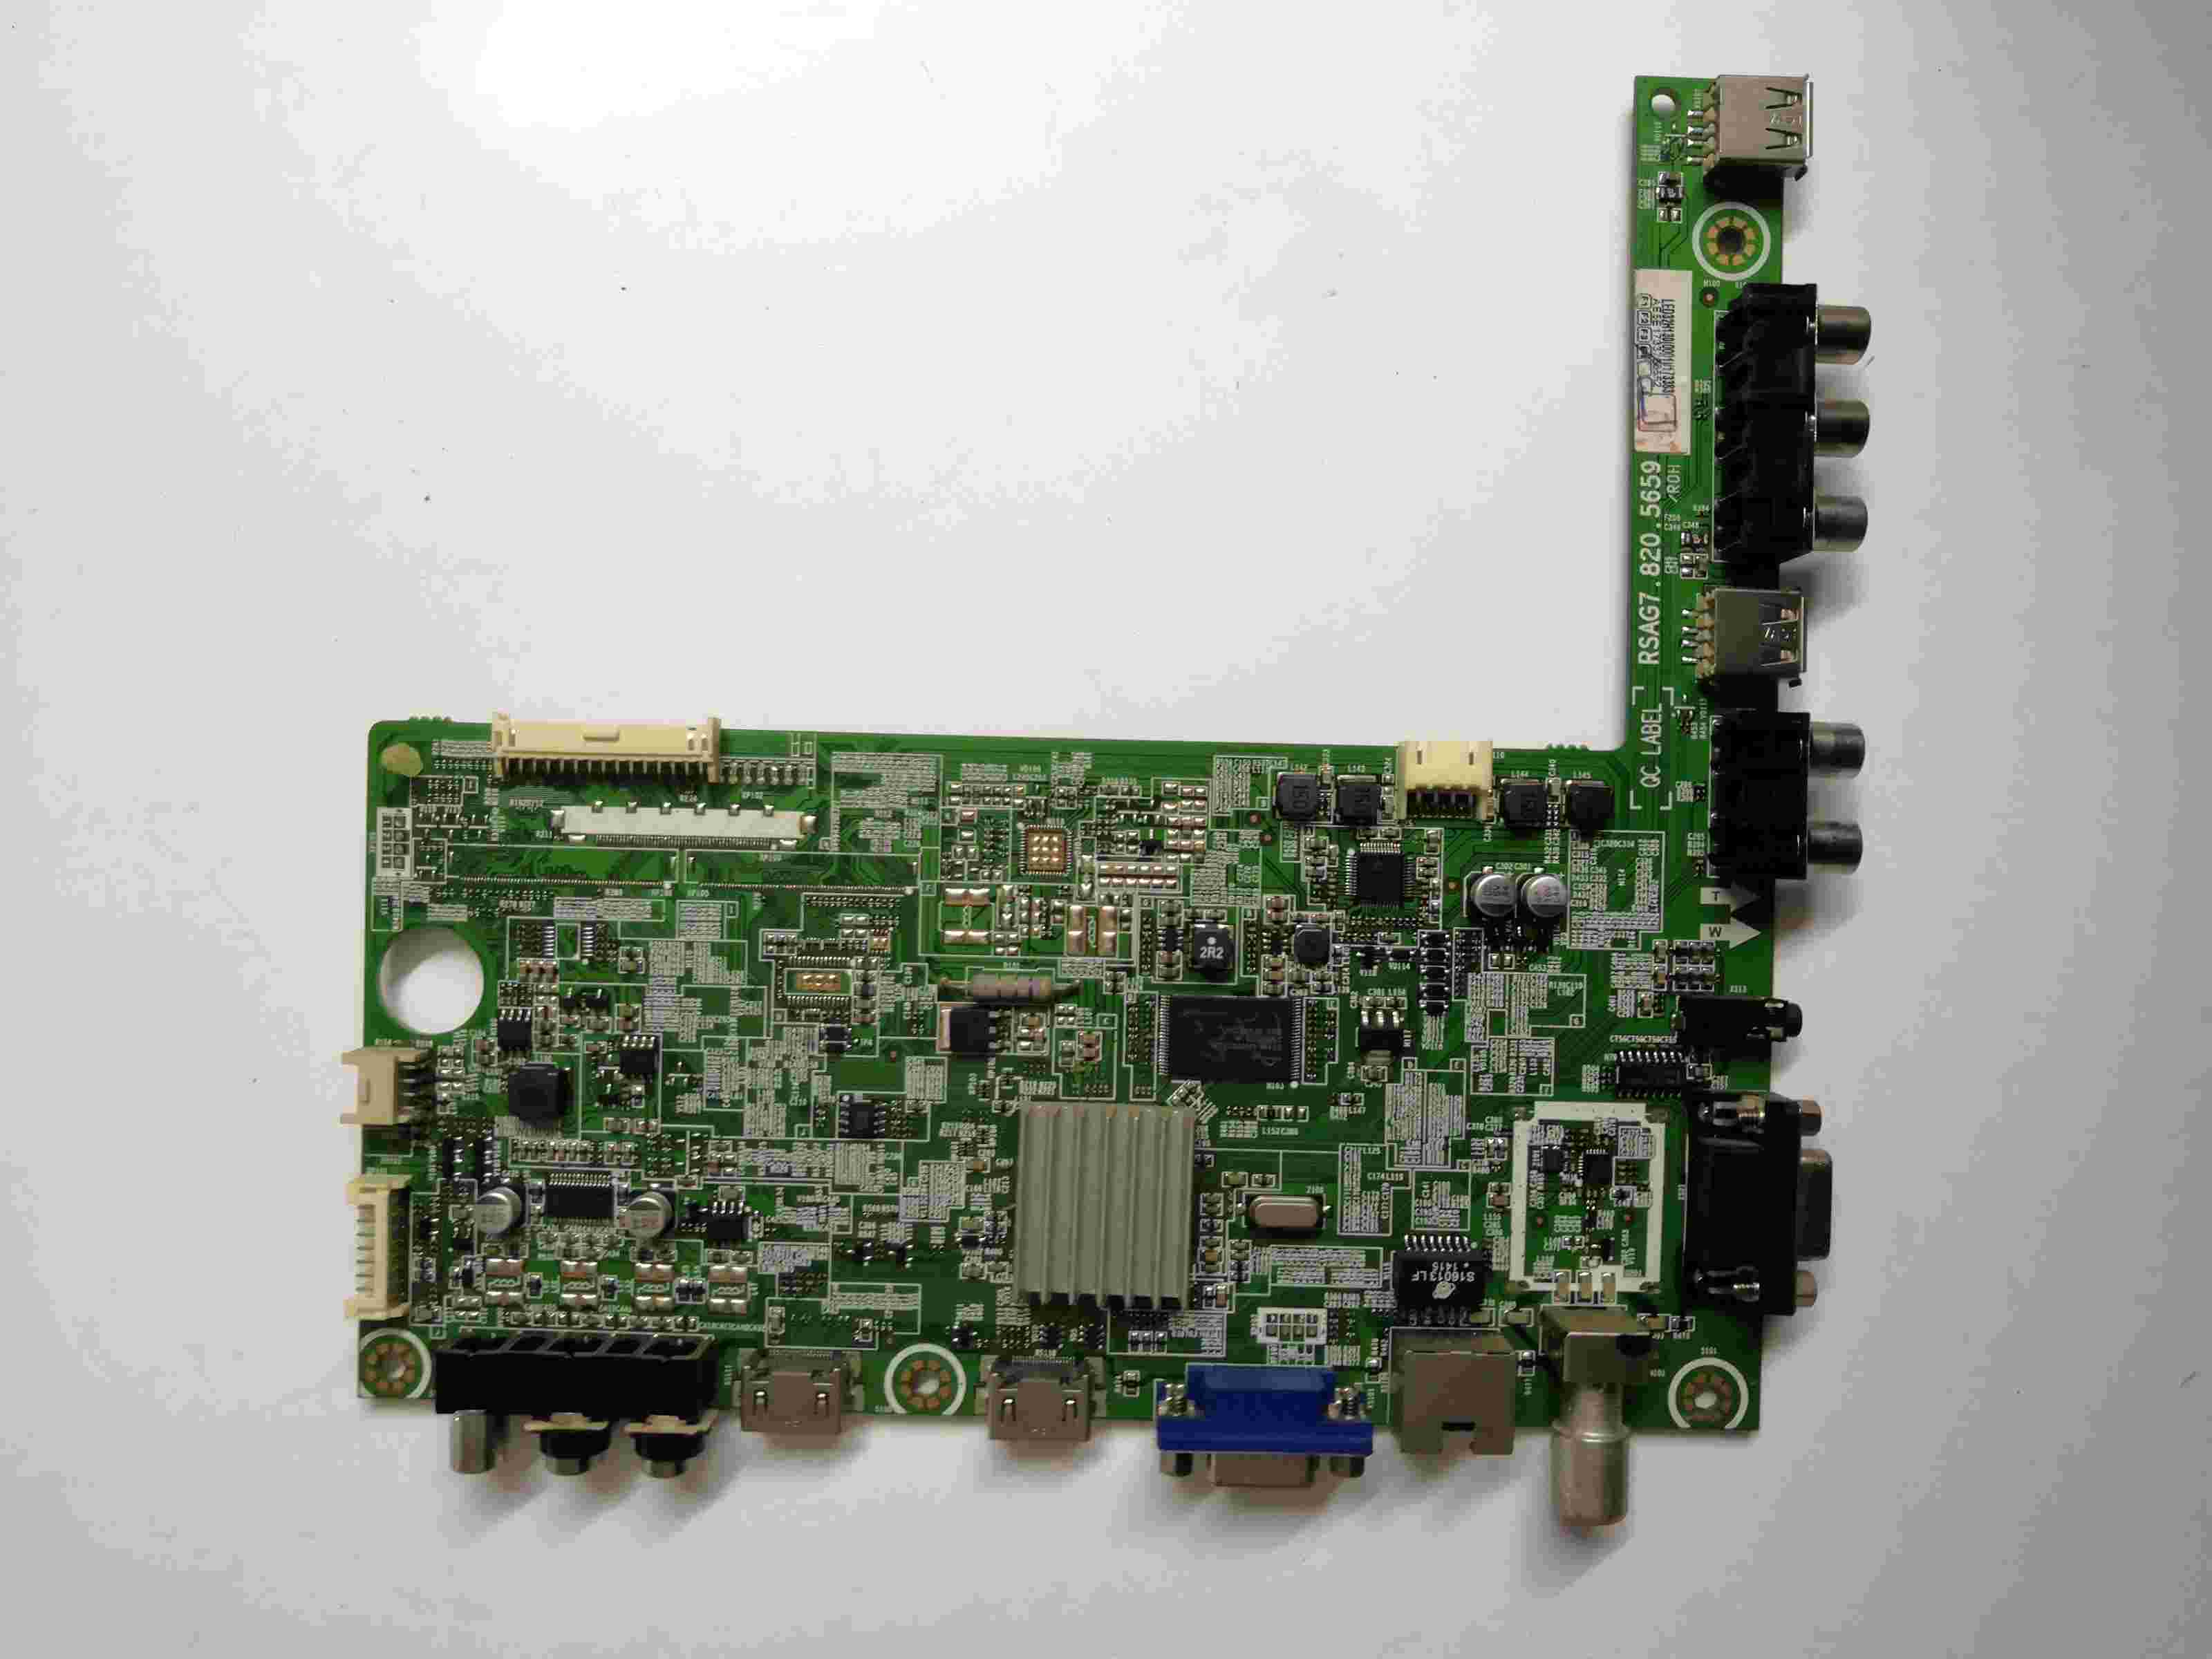 Main Board Power Board Circuit Logic Board Constant Current Board Led 32h130 Motherboard Rsag7.820.5659 Screen He315gh-e88 Audio & Video Replacement Parts